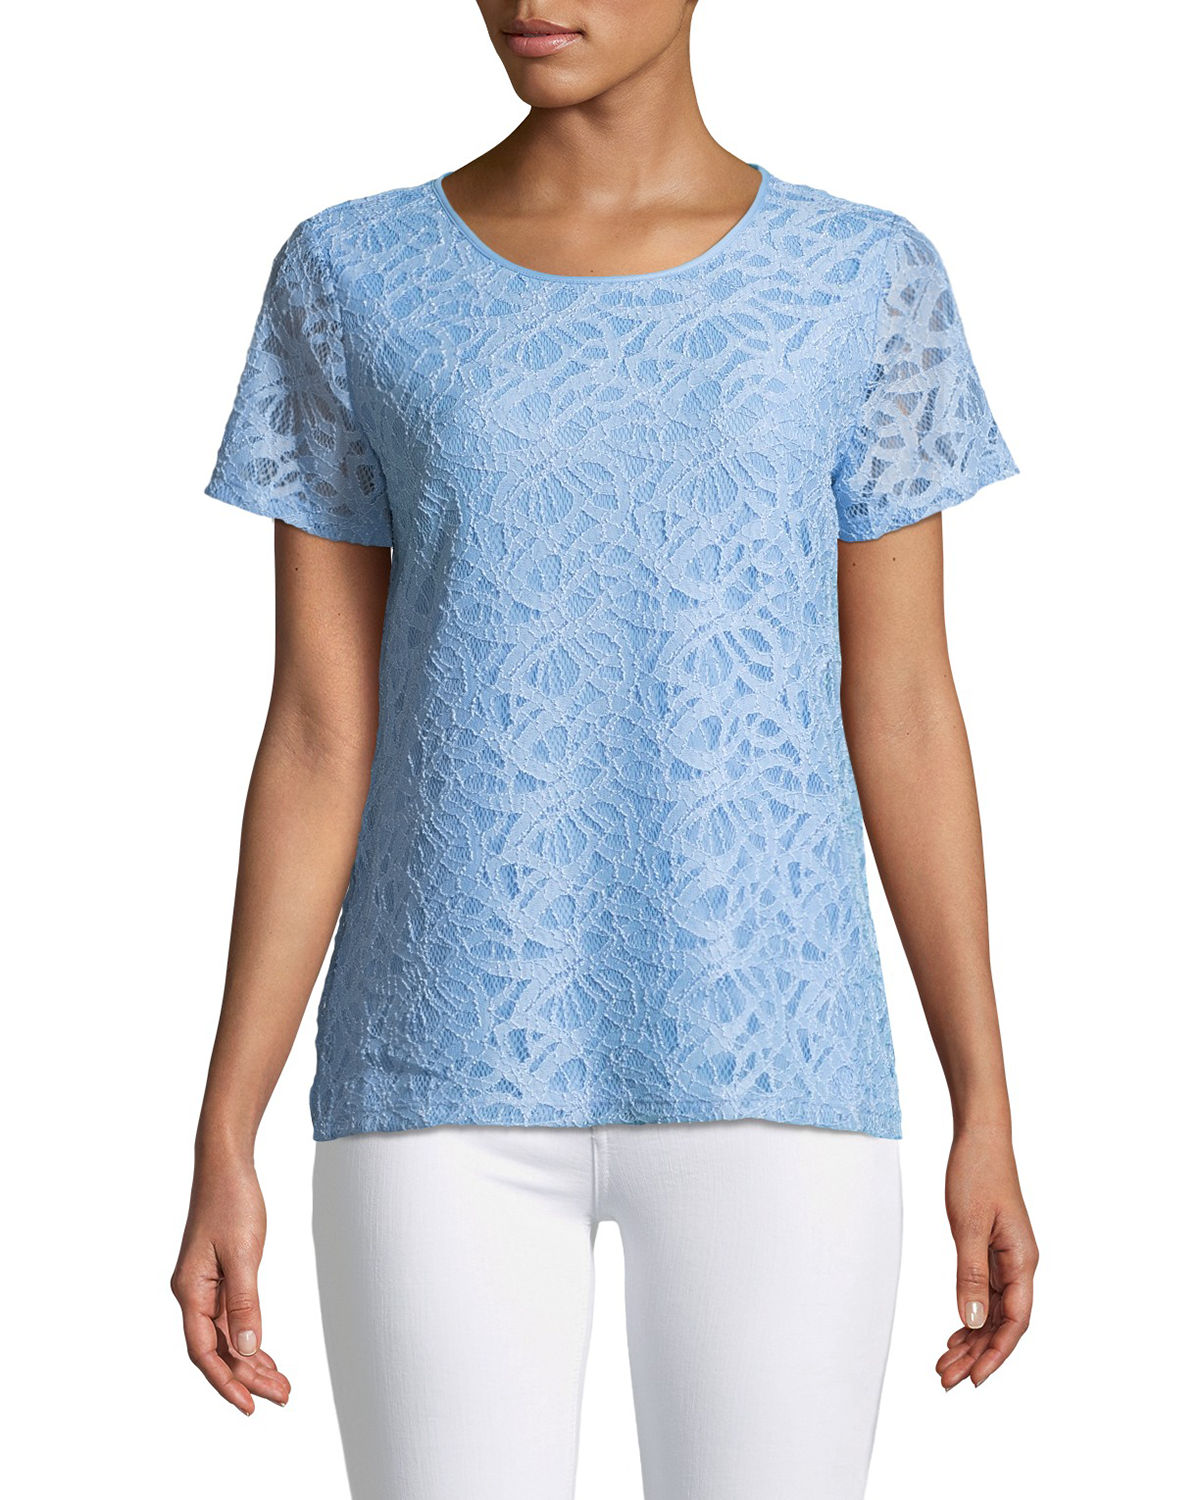 Lace Short-Sleeve Tee